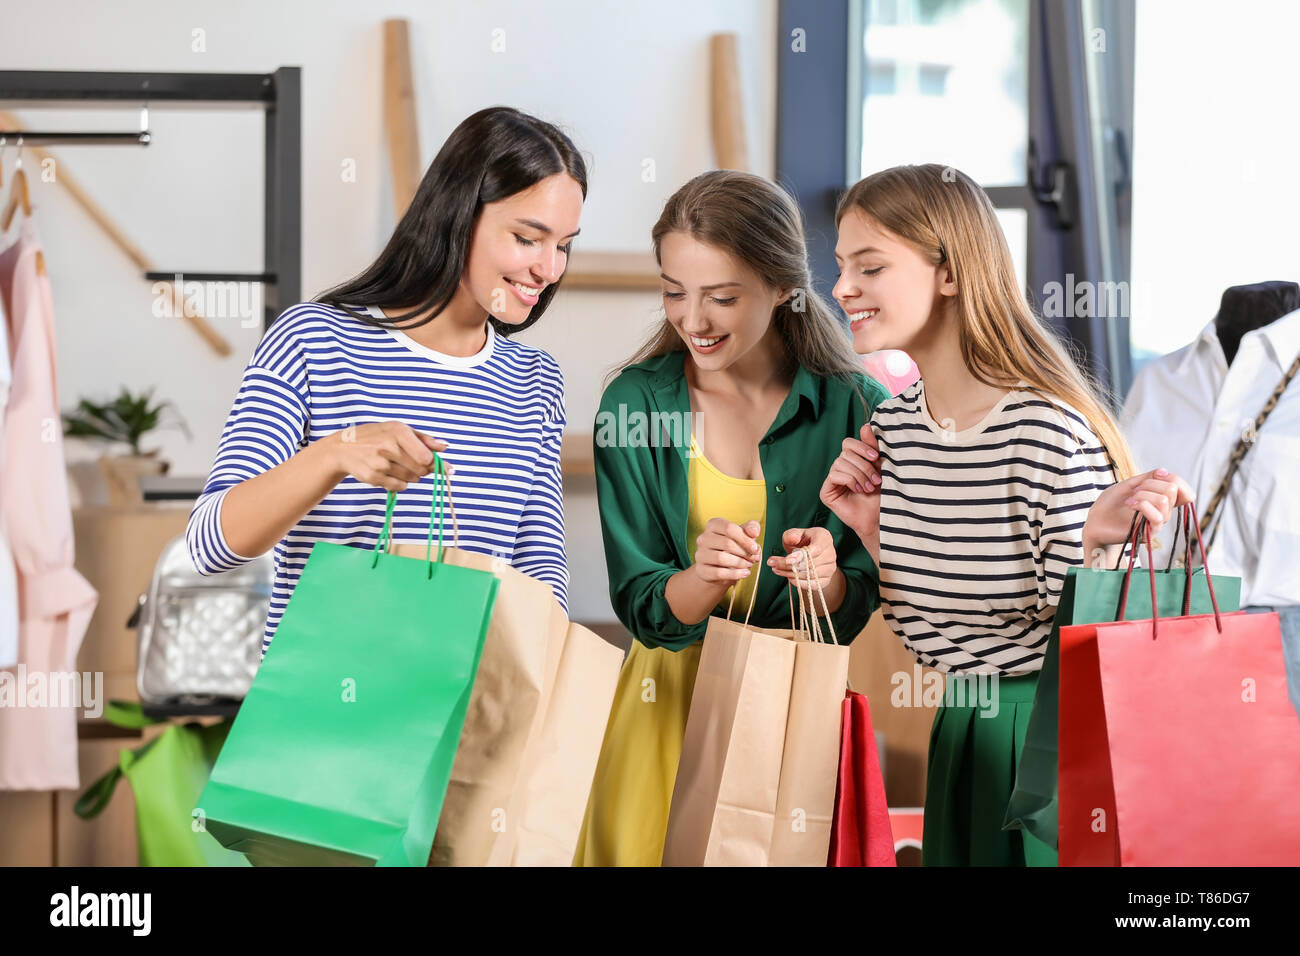 f3a7f7a712 Beautiful young women with shopping bags in clothing shop Stock ...